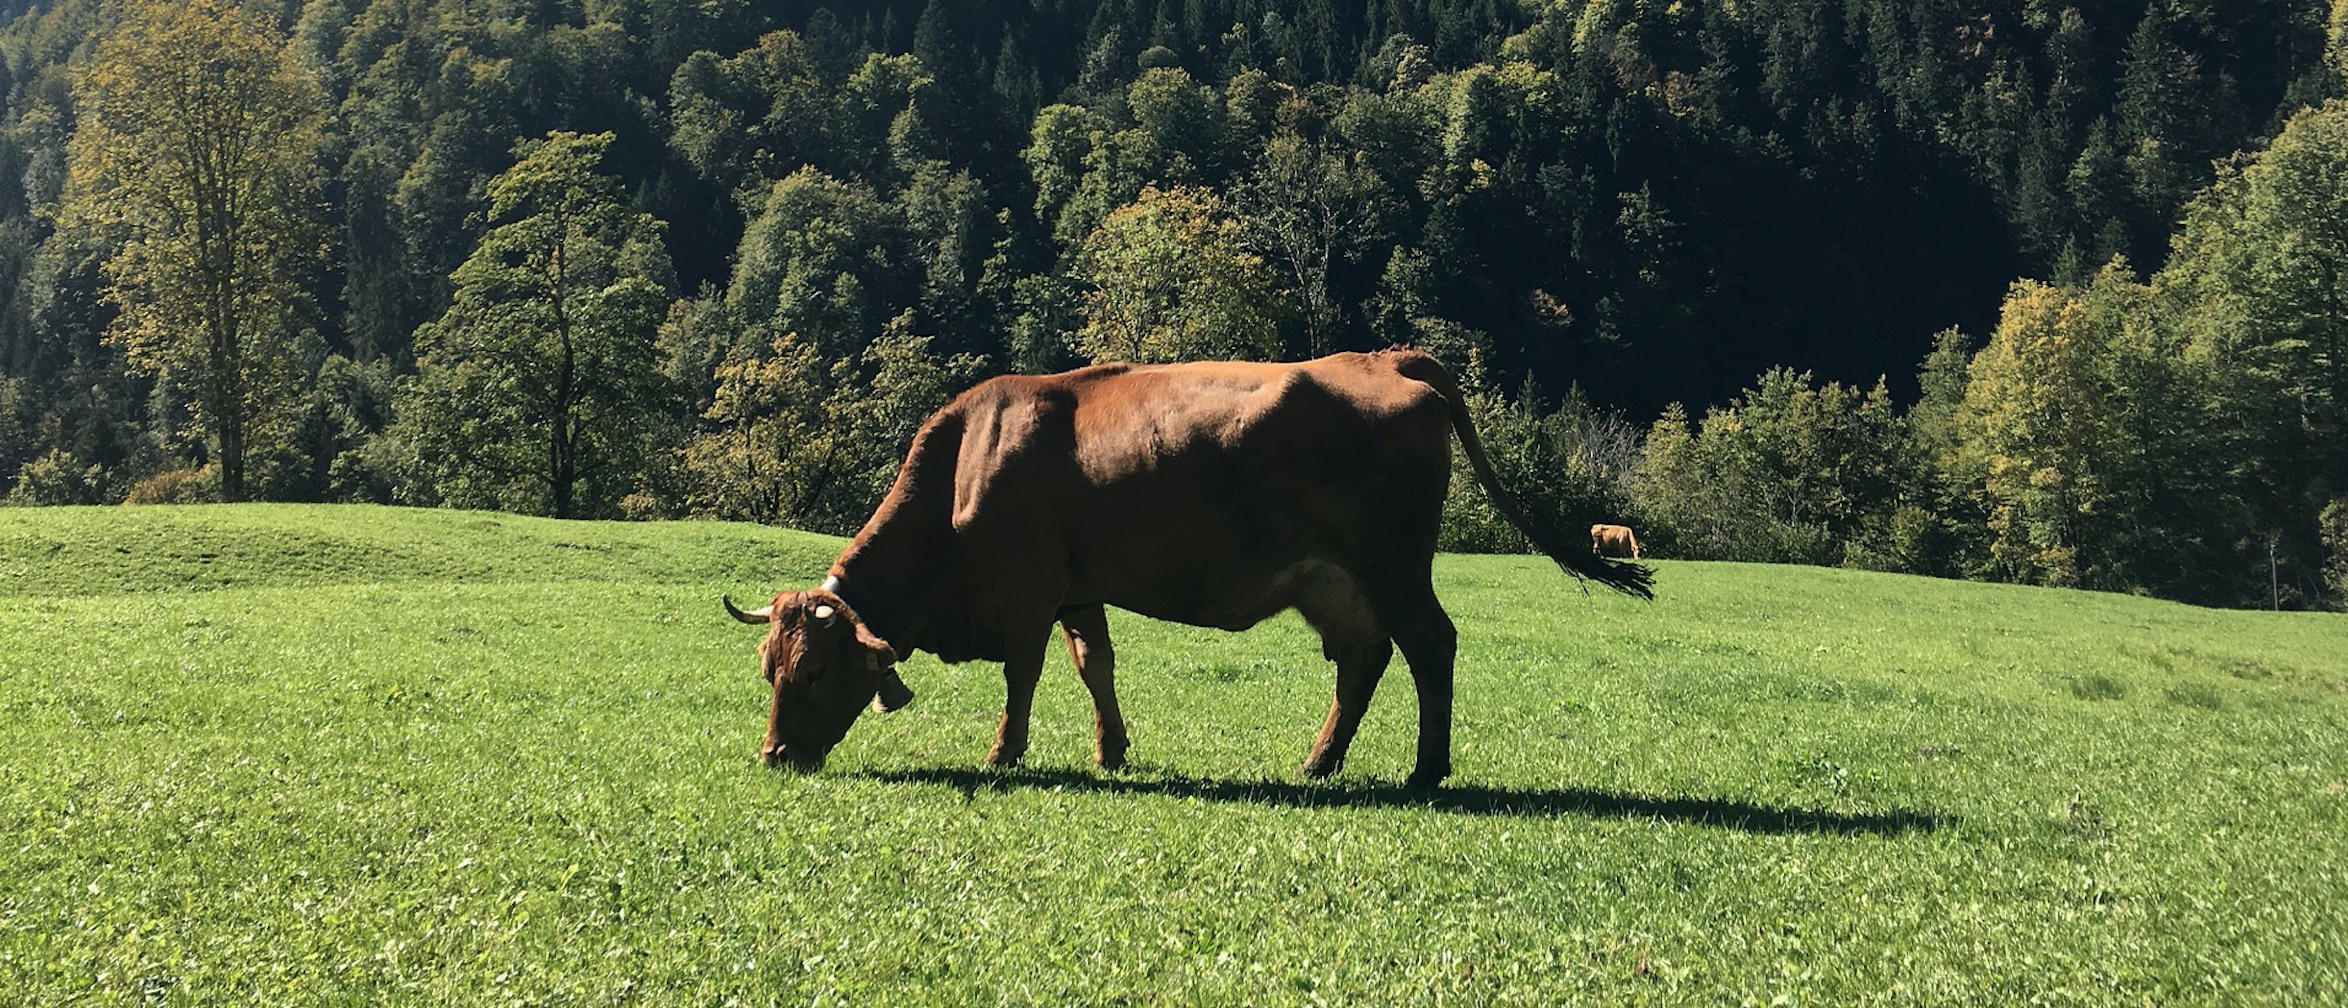 meadow-cow.jpg